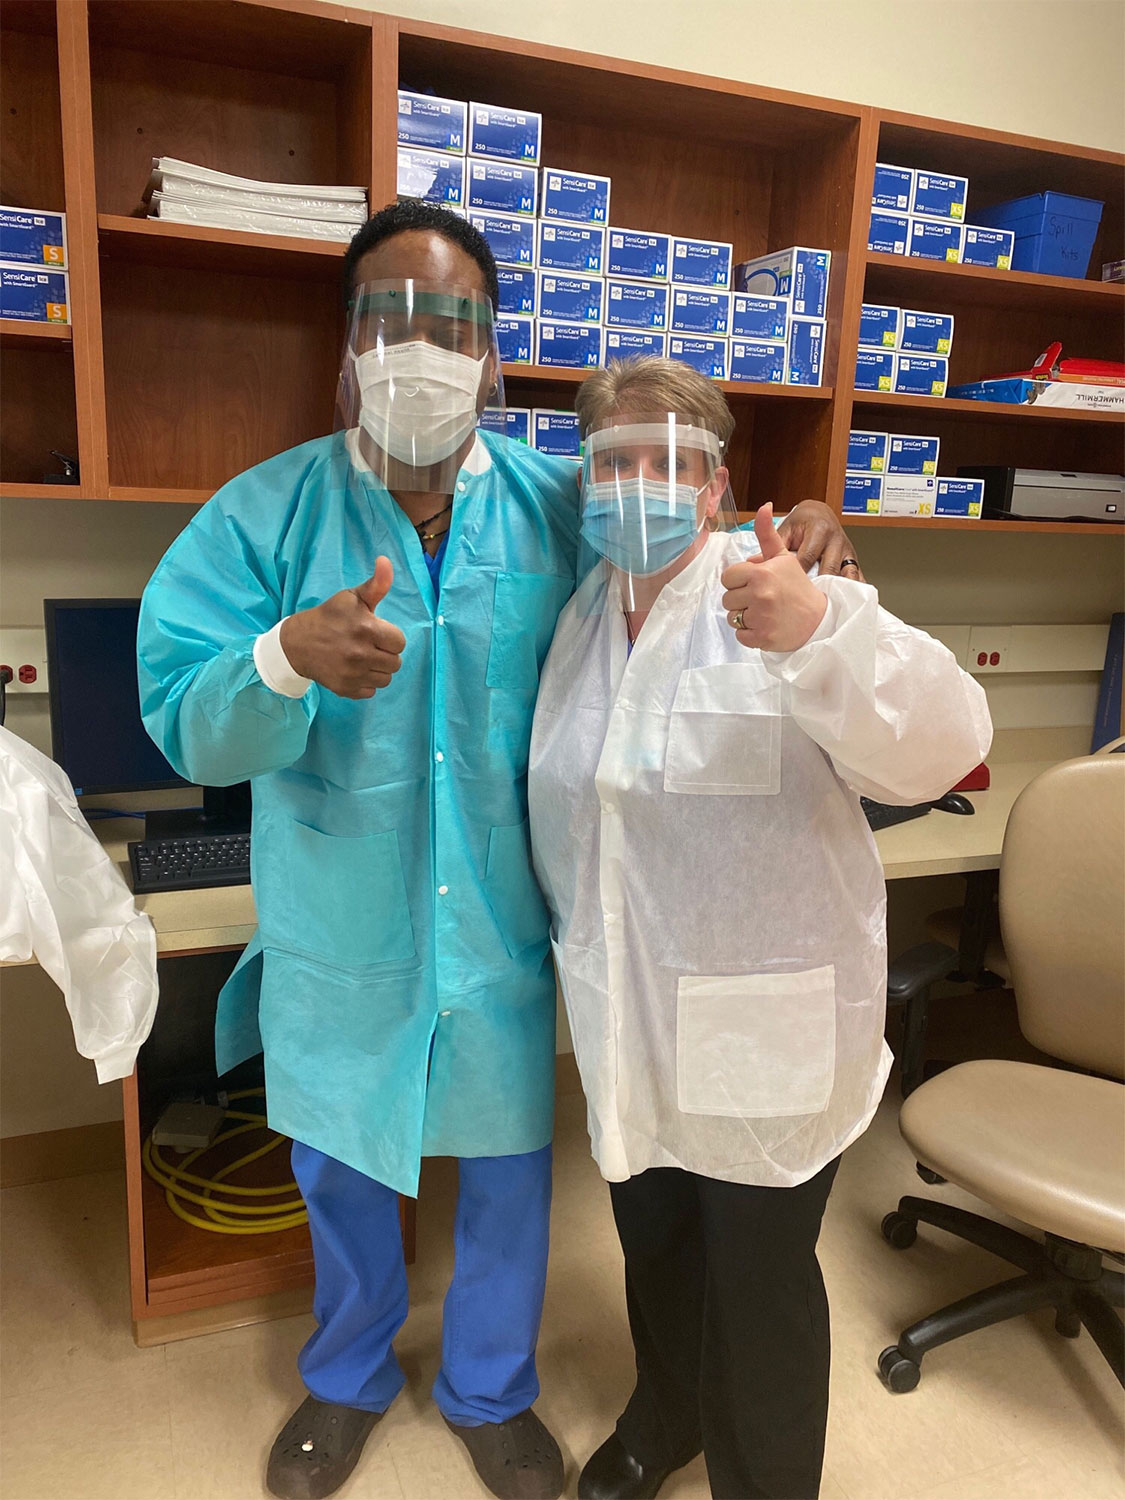 Phlebotomists at the Orange Regional Medical Center show their appreciation for the new face shields they received that were made at the SUNY New Paltz 3D printing lab.